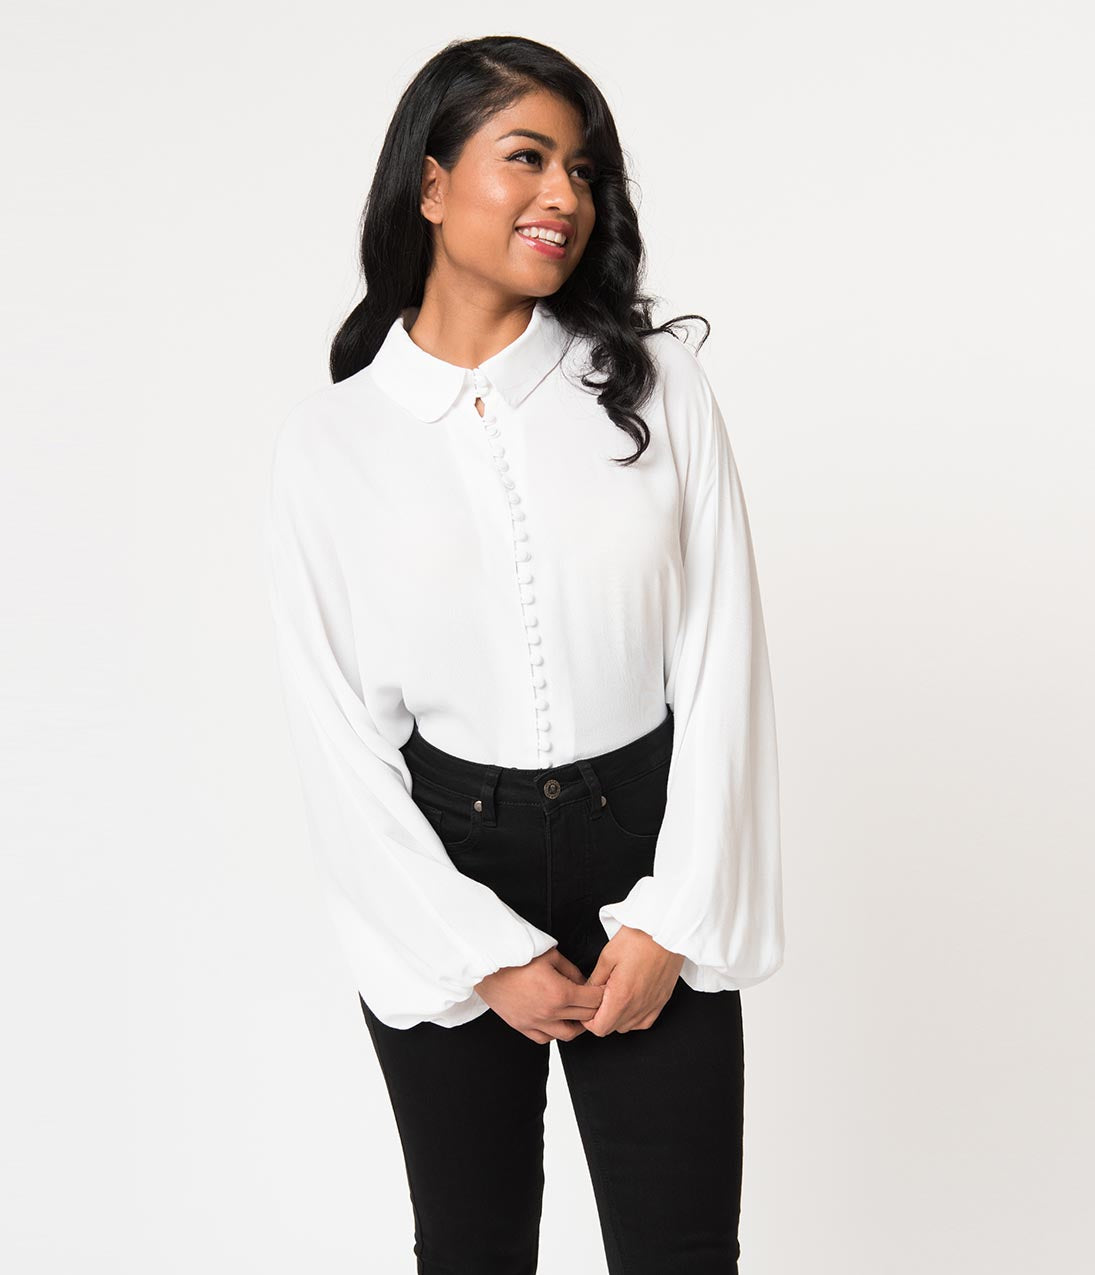 Vintage & Retro Shirts, Halter Tops, Blouses Vintage Style White Button Up Bishop Sleeve Crepe Blouse $52.00 AT vintagedancer.com